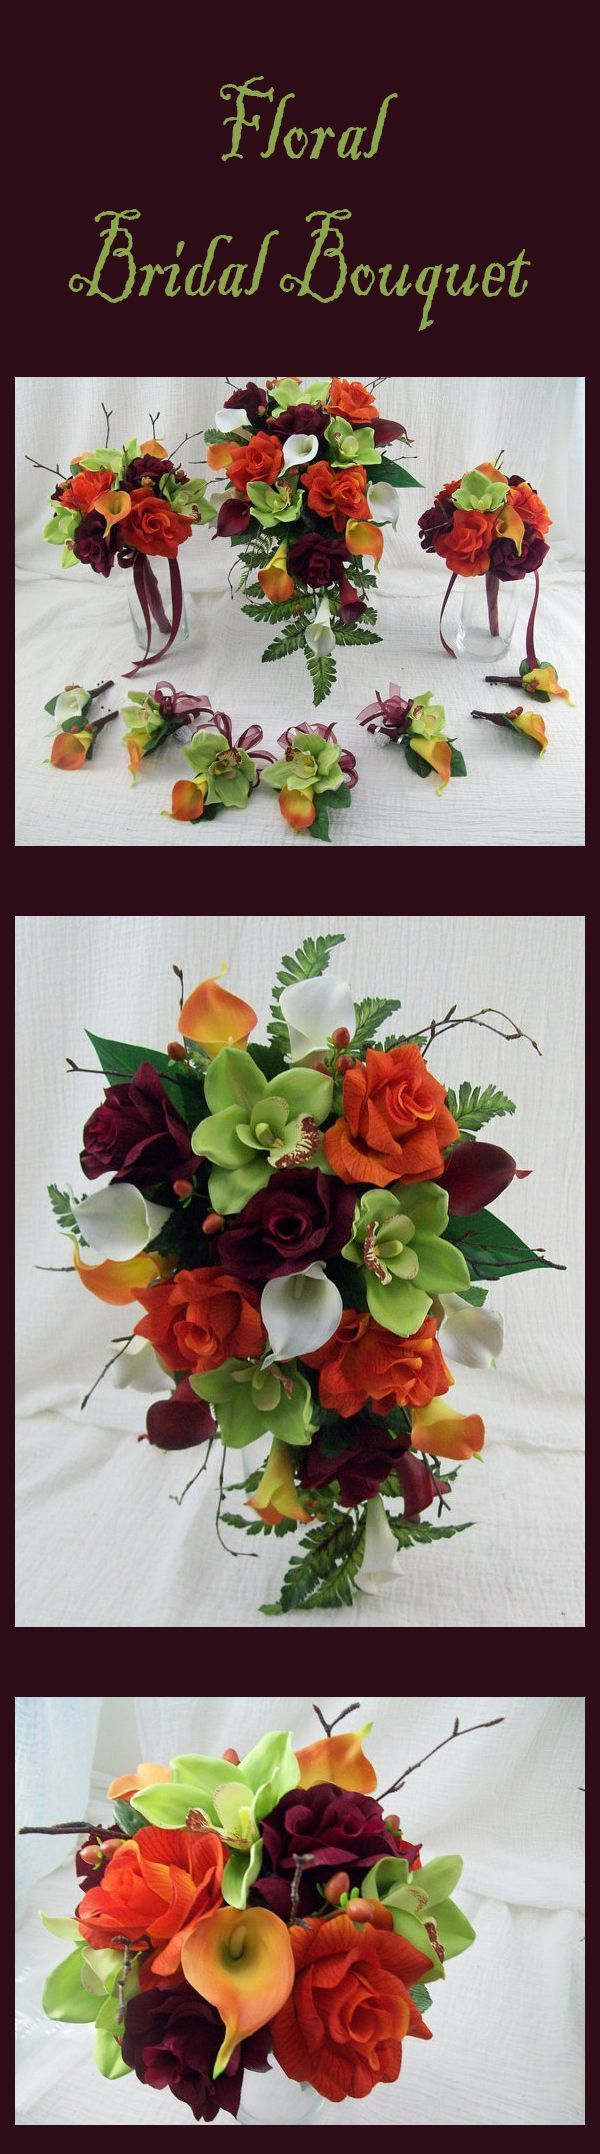 Fall Wedding Flowers Destination Wedding Cascade Bridal Bouquet Orchids Roses and Real Touch Calla lilies Silk Flower Bridal Package #affiliate #ad #fallwedding #weddinginspiration #flowers #bouquet #weddingflowers